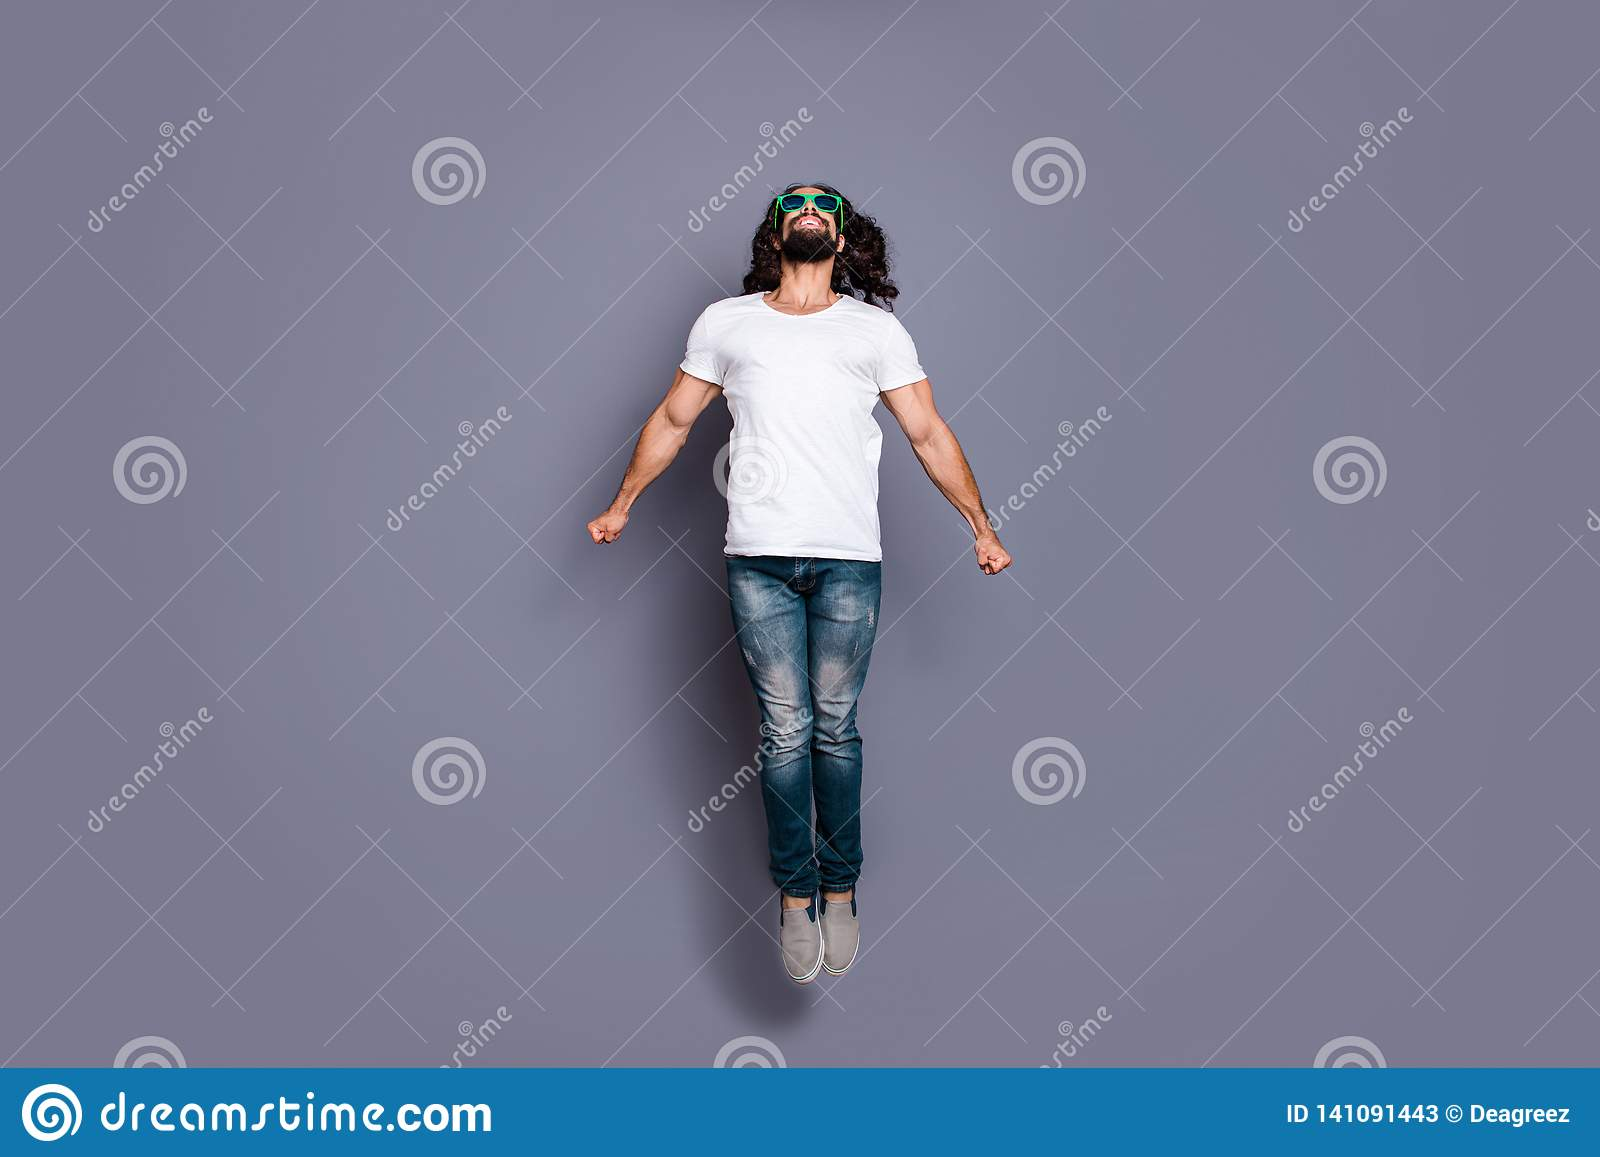 Full Length Body Size Profile Side View Portrait Of His He Nice Cool Free Attractive Cheerful Cheery Wavy Haired Guy Stock Image Image Of Dream Eastern 141091443